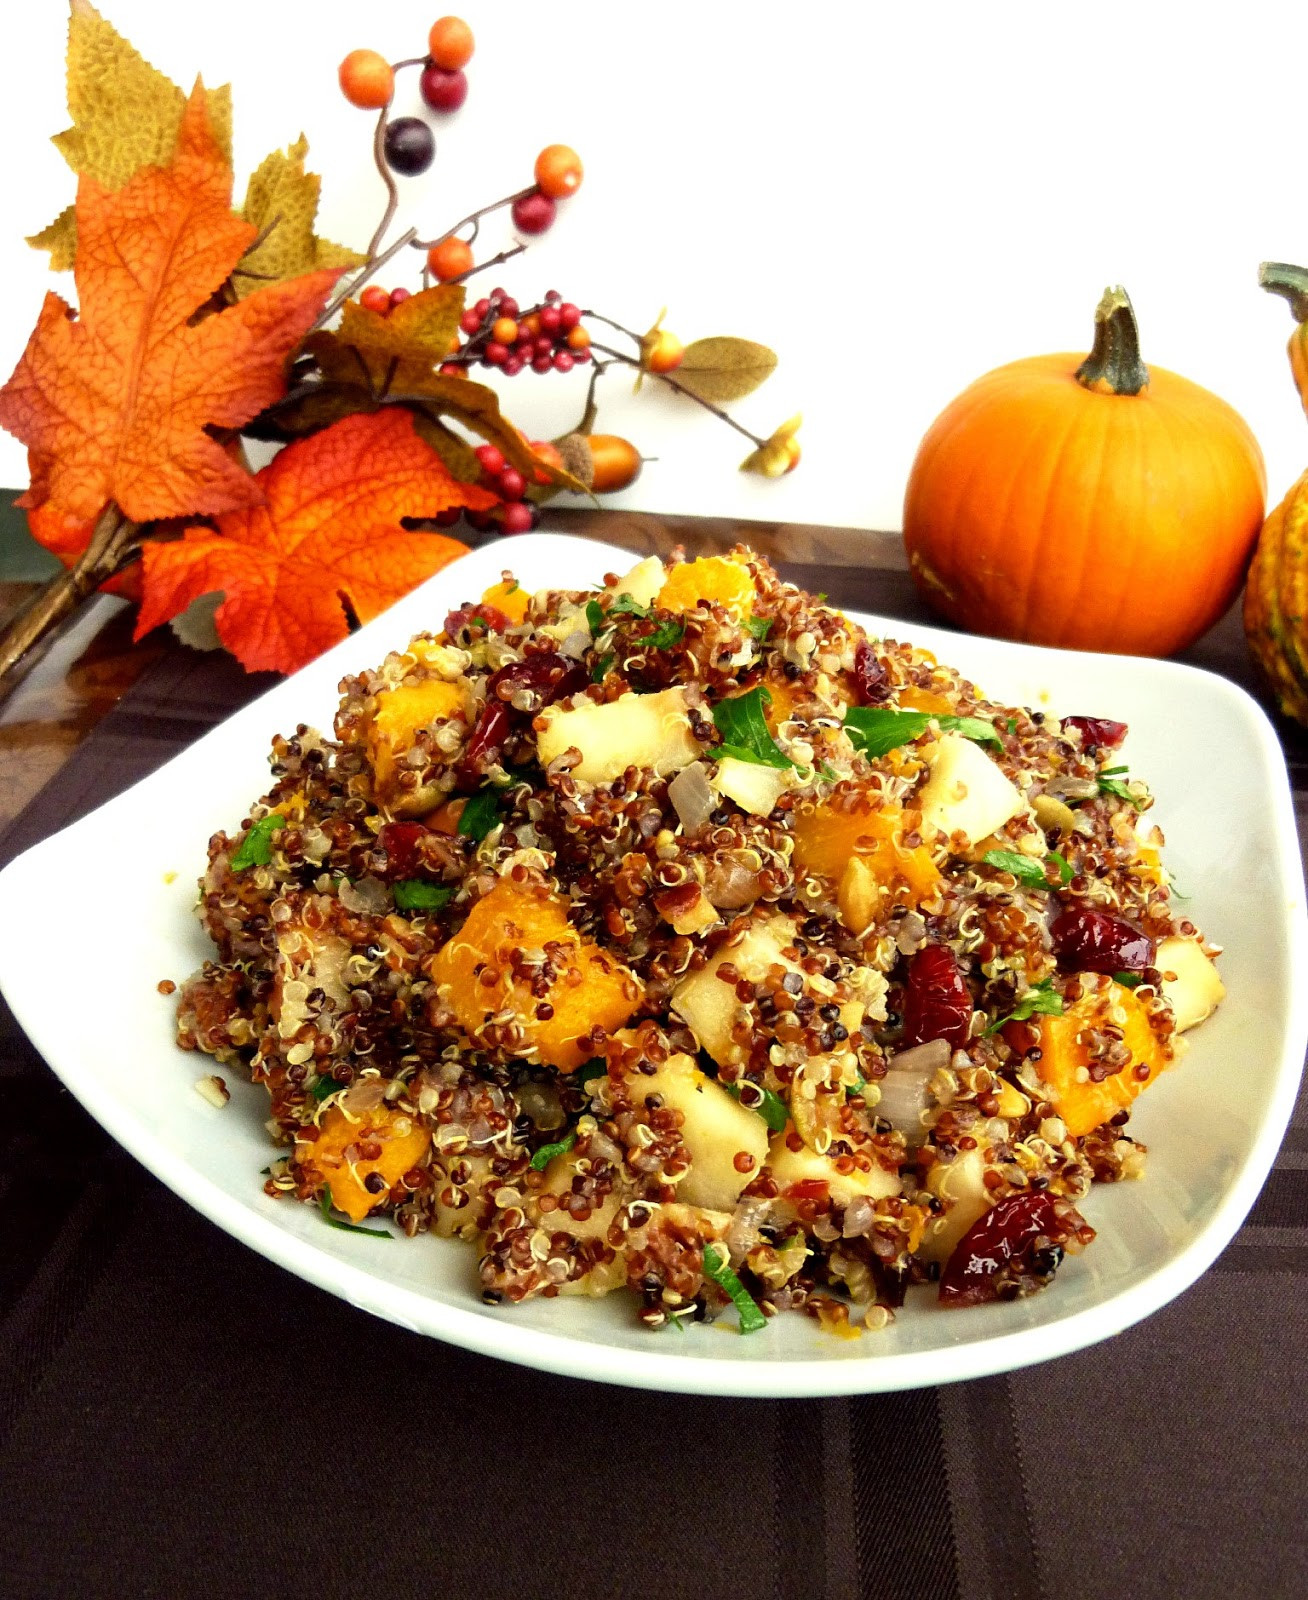 Vegetarian Thanksgiving Main Course  Vanilla & Spice Recipes for a Ve arian Thanksgiving